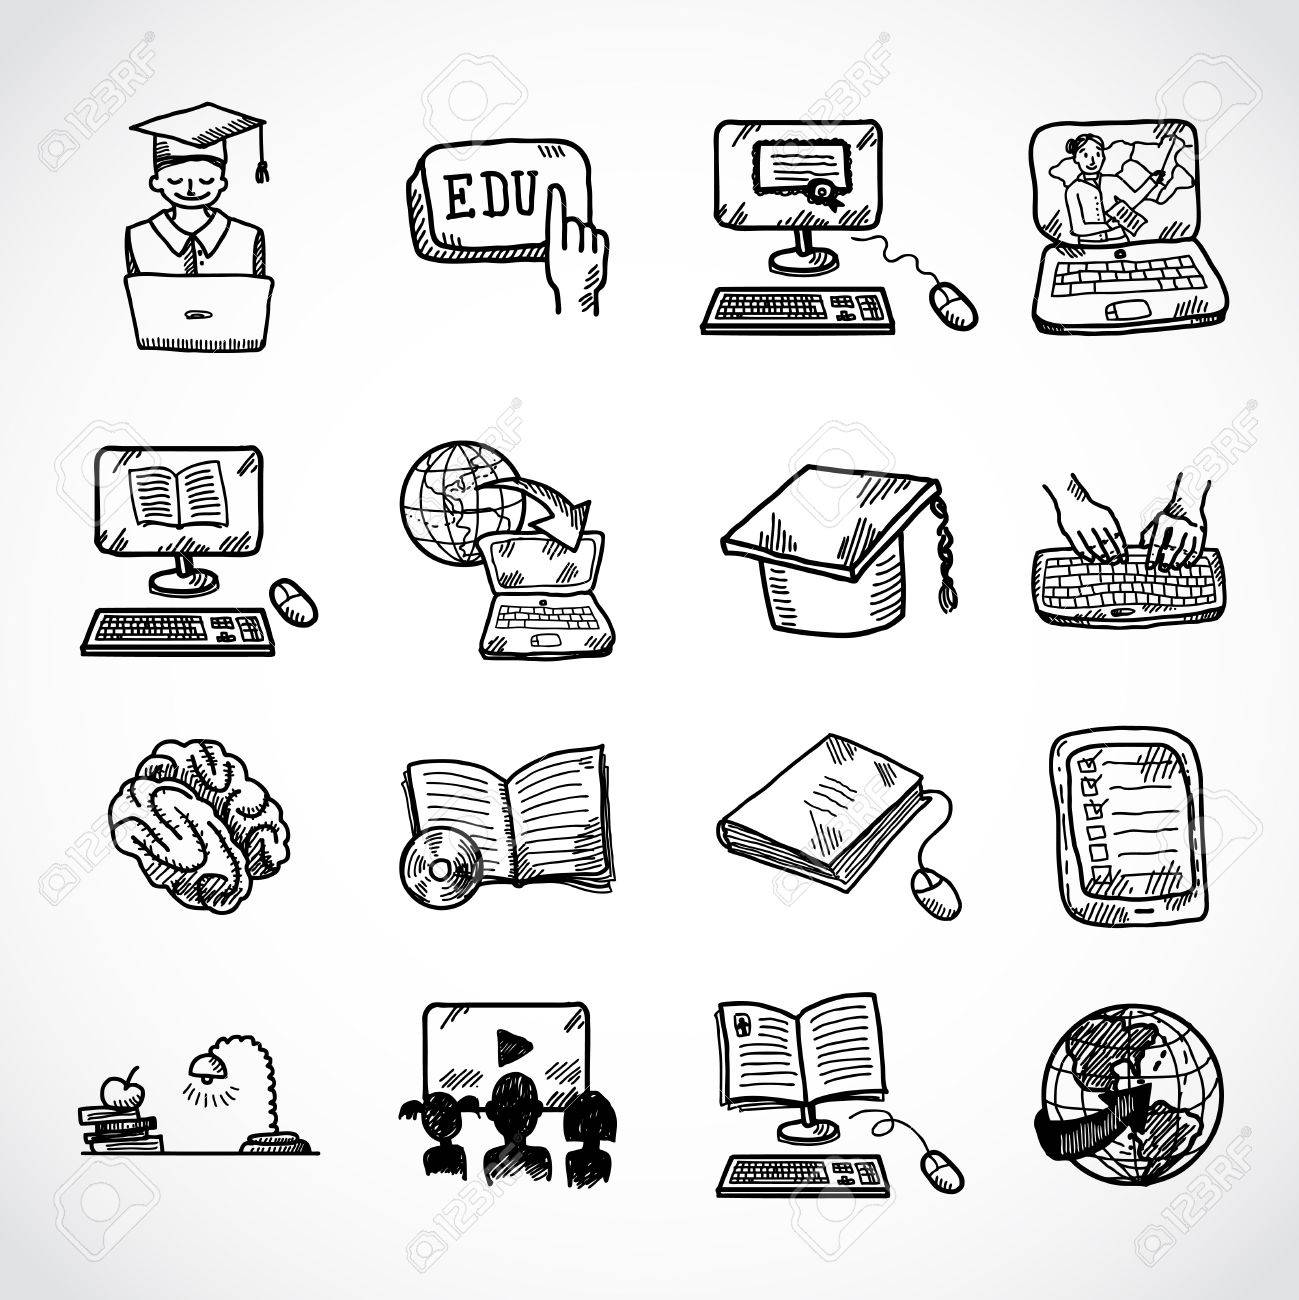 online education learning knowledge and experience icons sketch